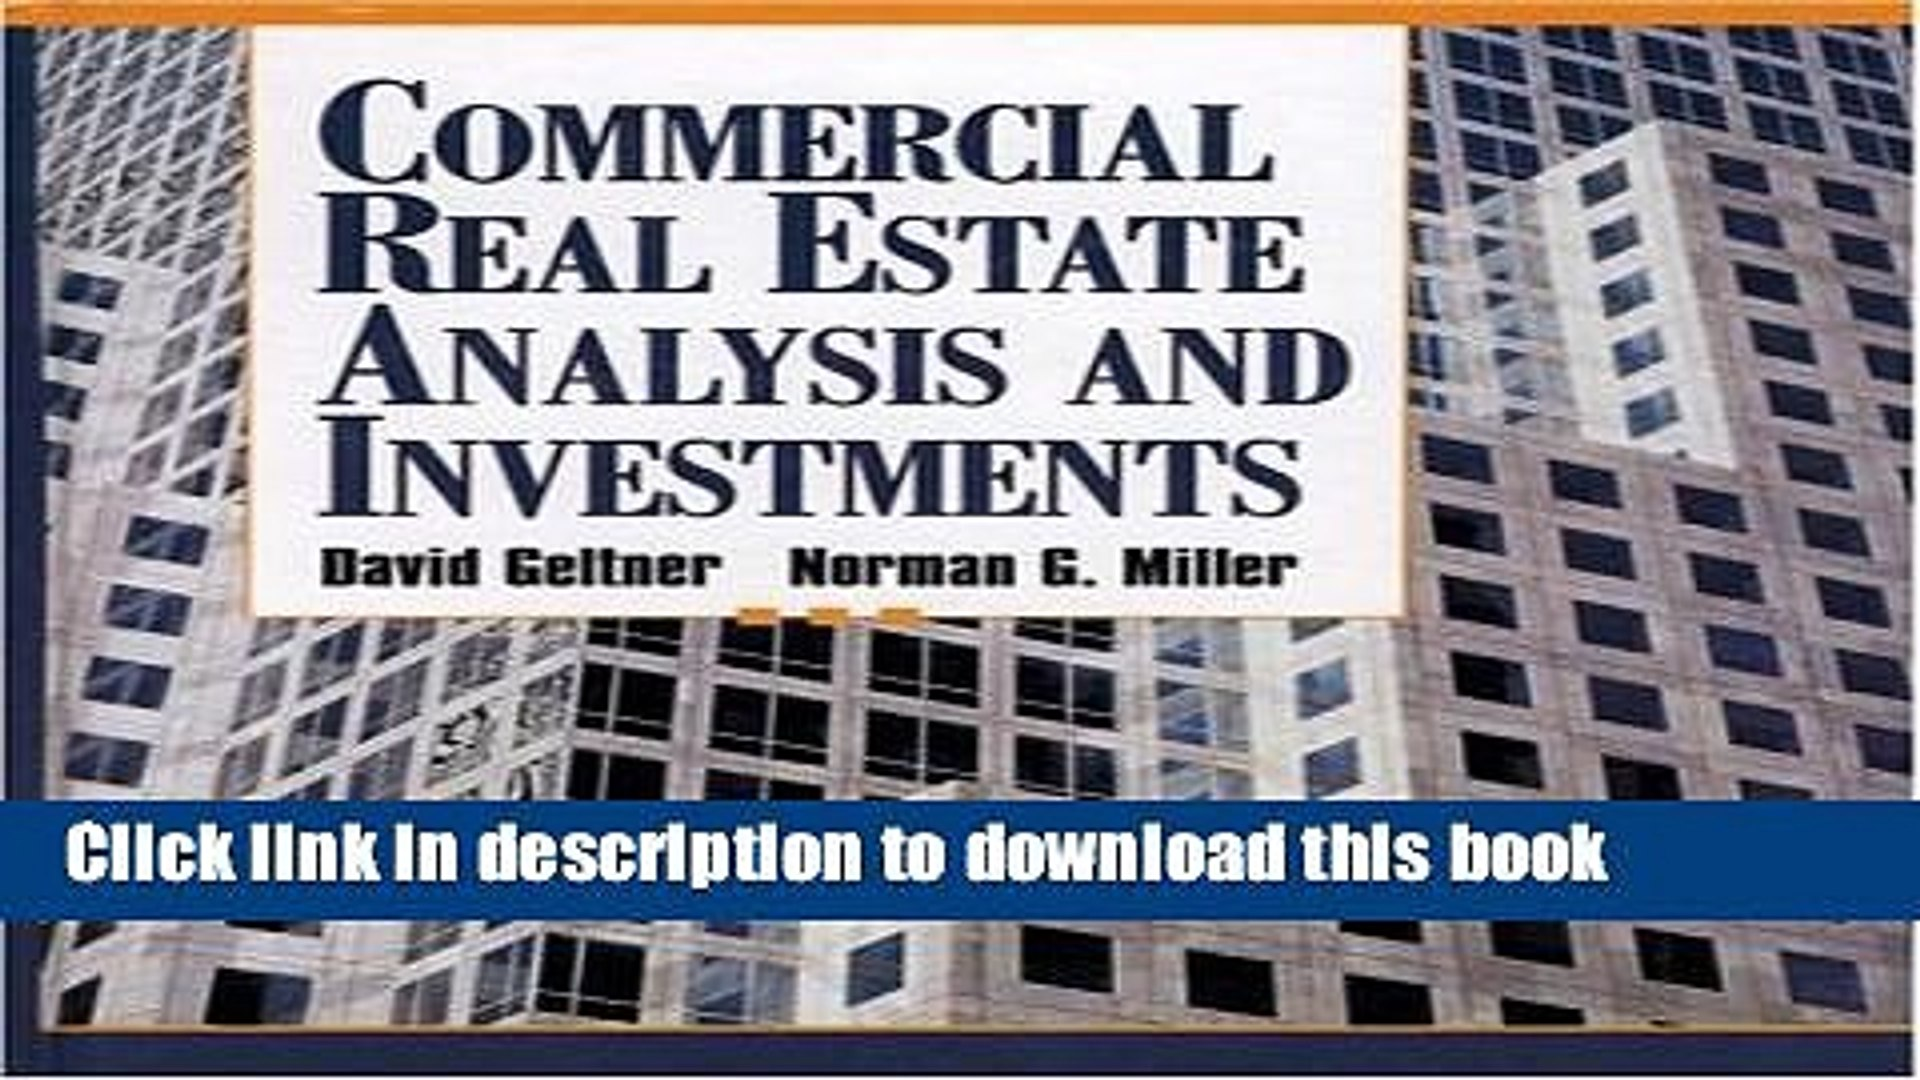 commercial real estate analysis and investments geltner pdf download